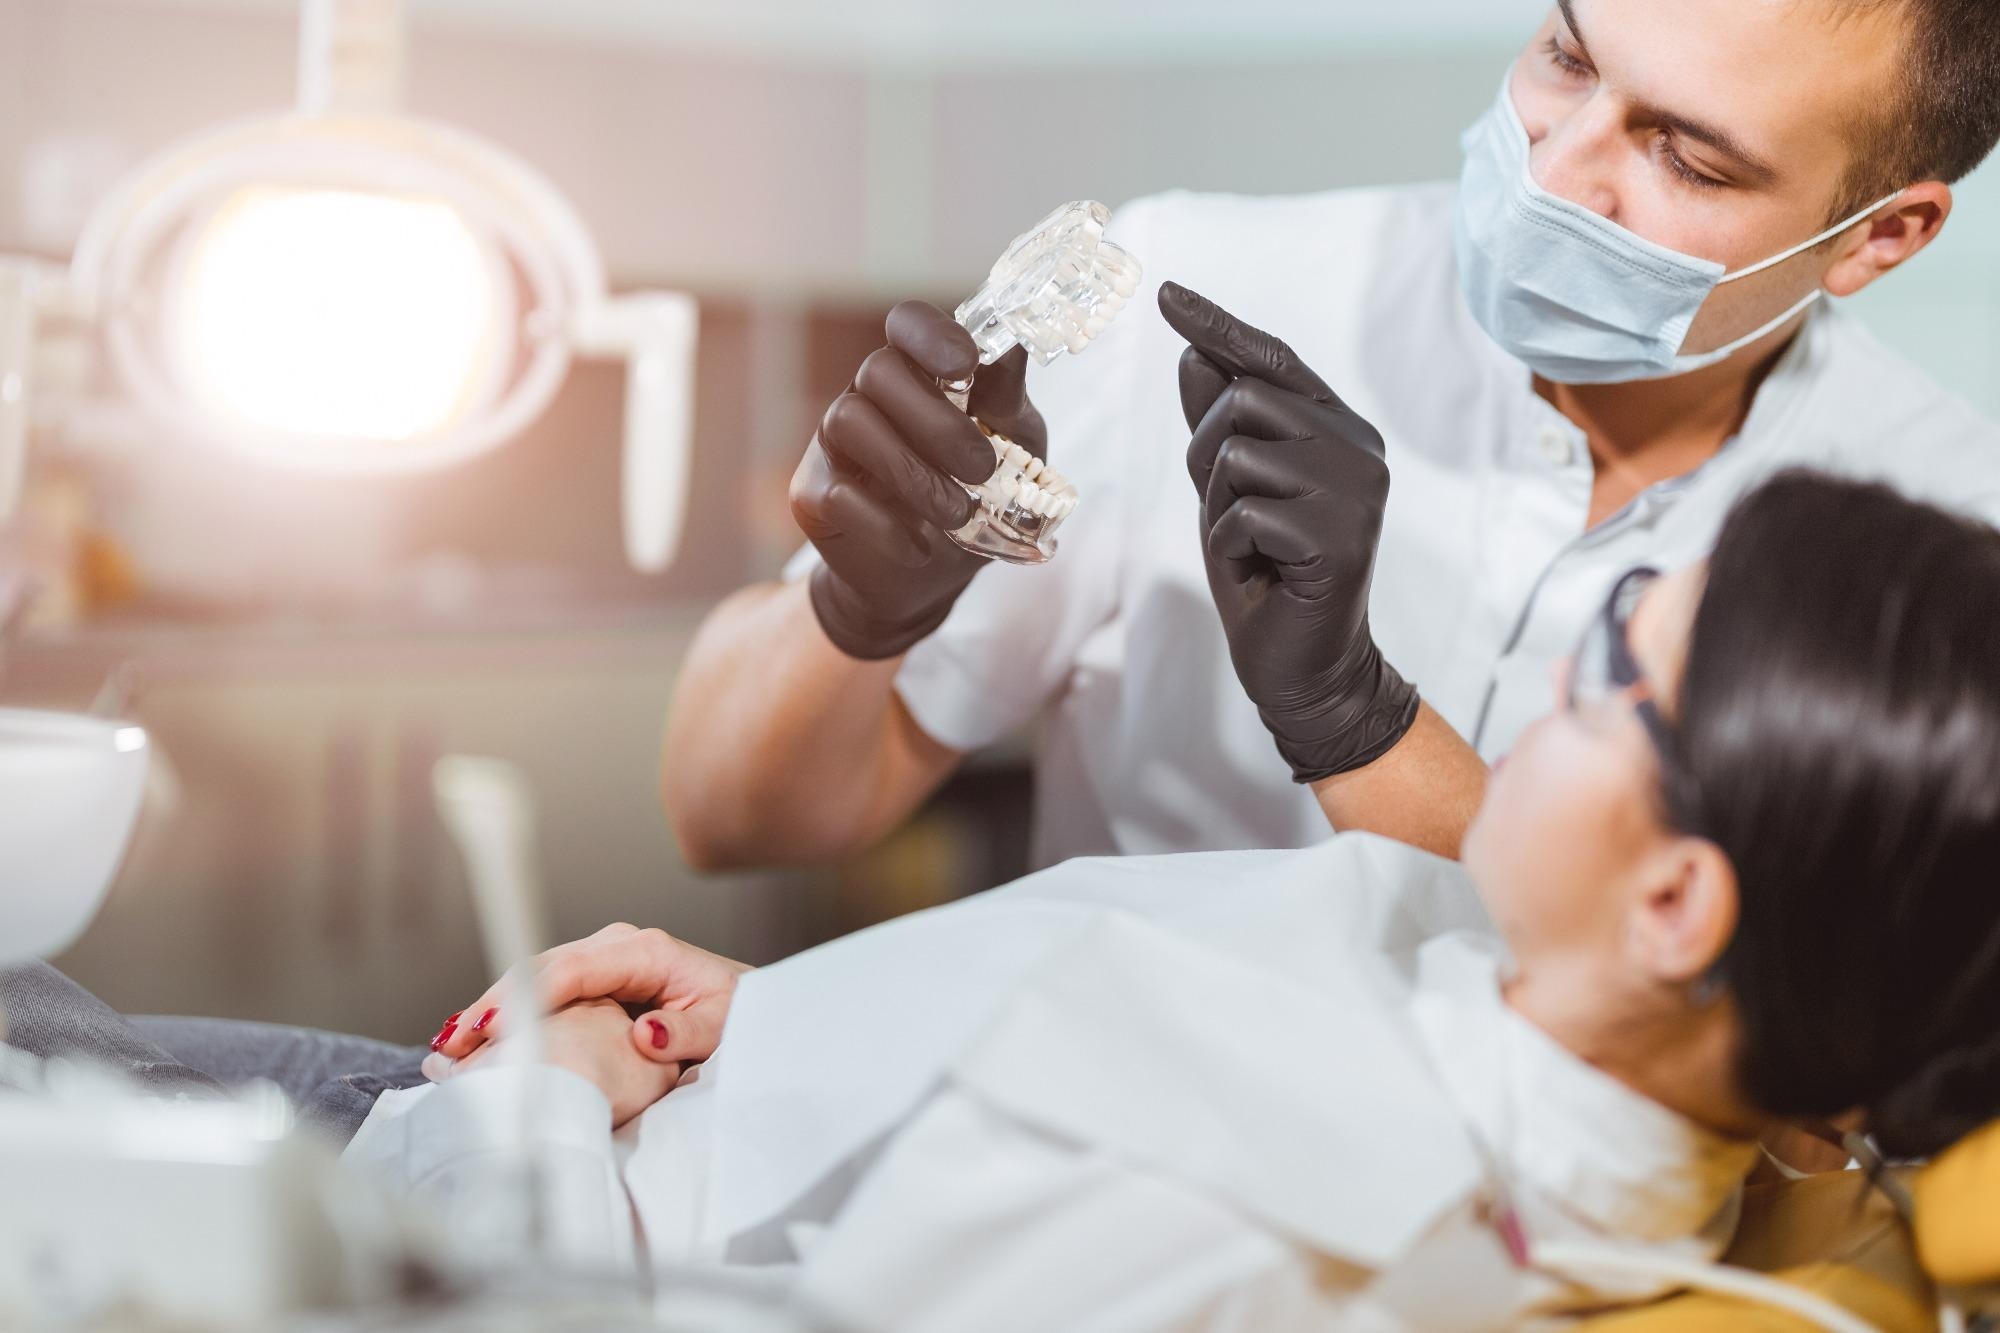 Graphene Oxide Could Give Dentistry a Boost